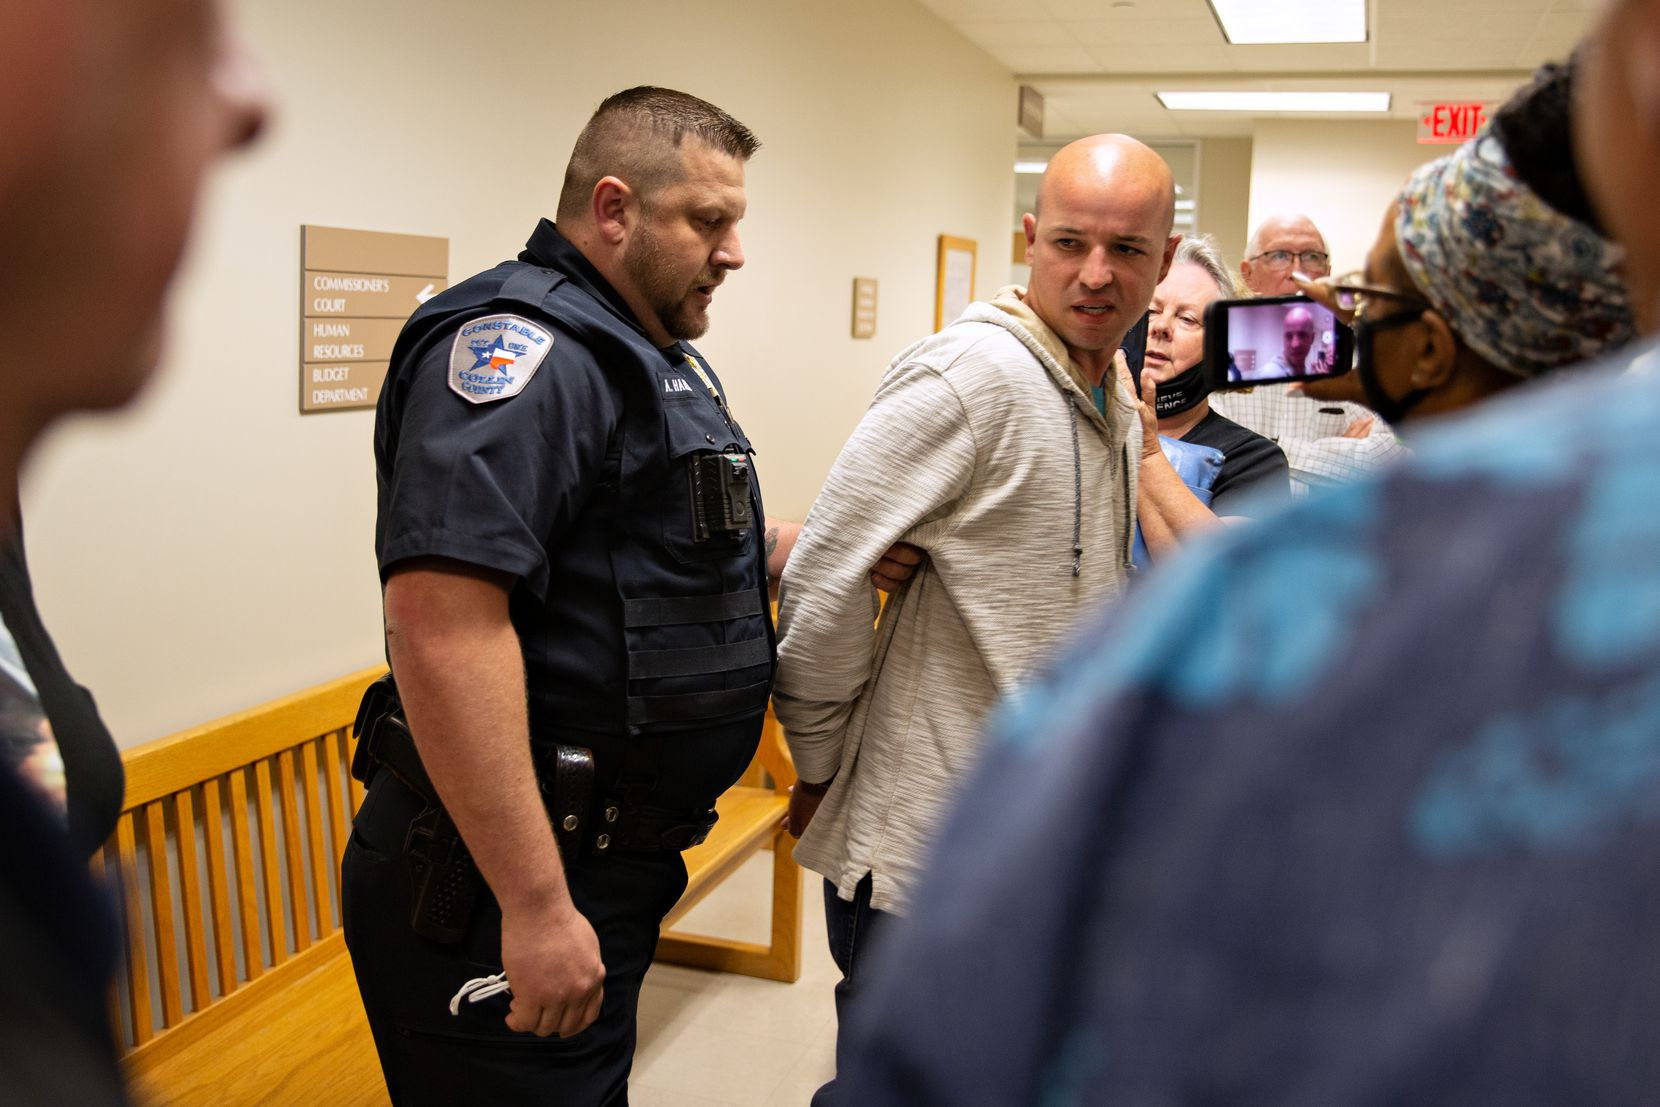 Joshua Murray is arrested by police after Judge Chris Hill ruled Murray in contempt of court at the Collin County Commissioners Court meeting at the Collin County Administration Building in McKinney, TX on Monday, May 24, 2021. (Shelby Tauber/Special Contributor)